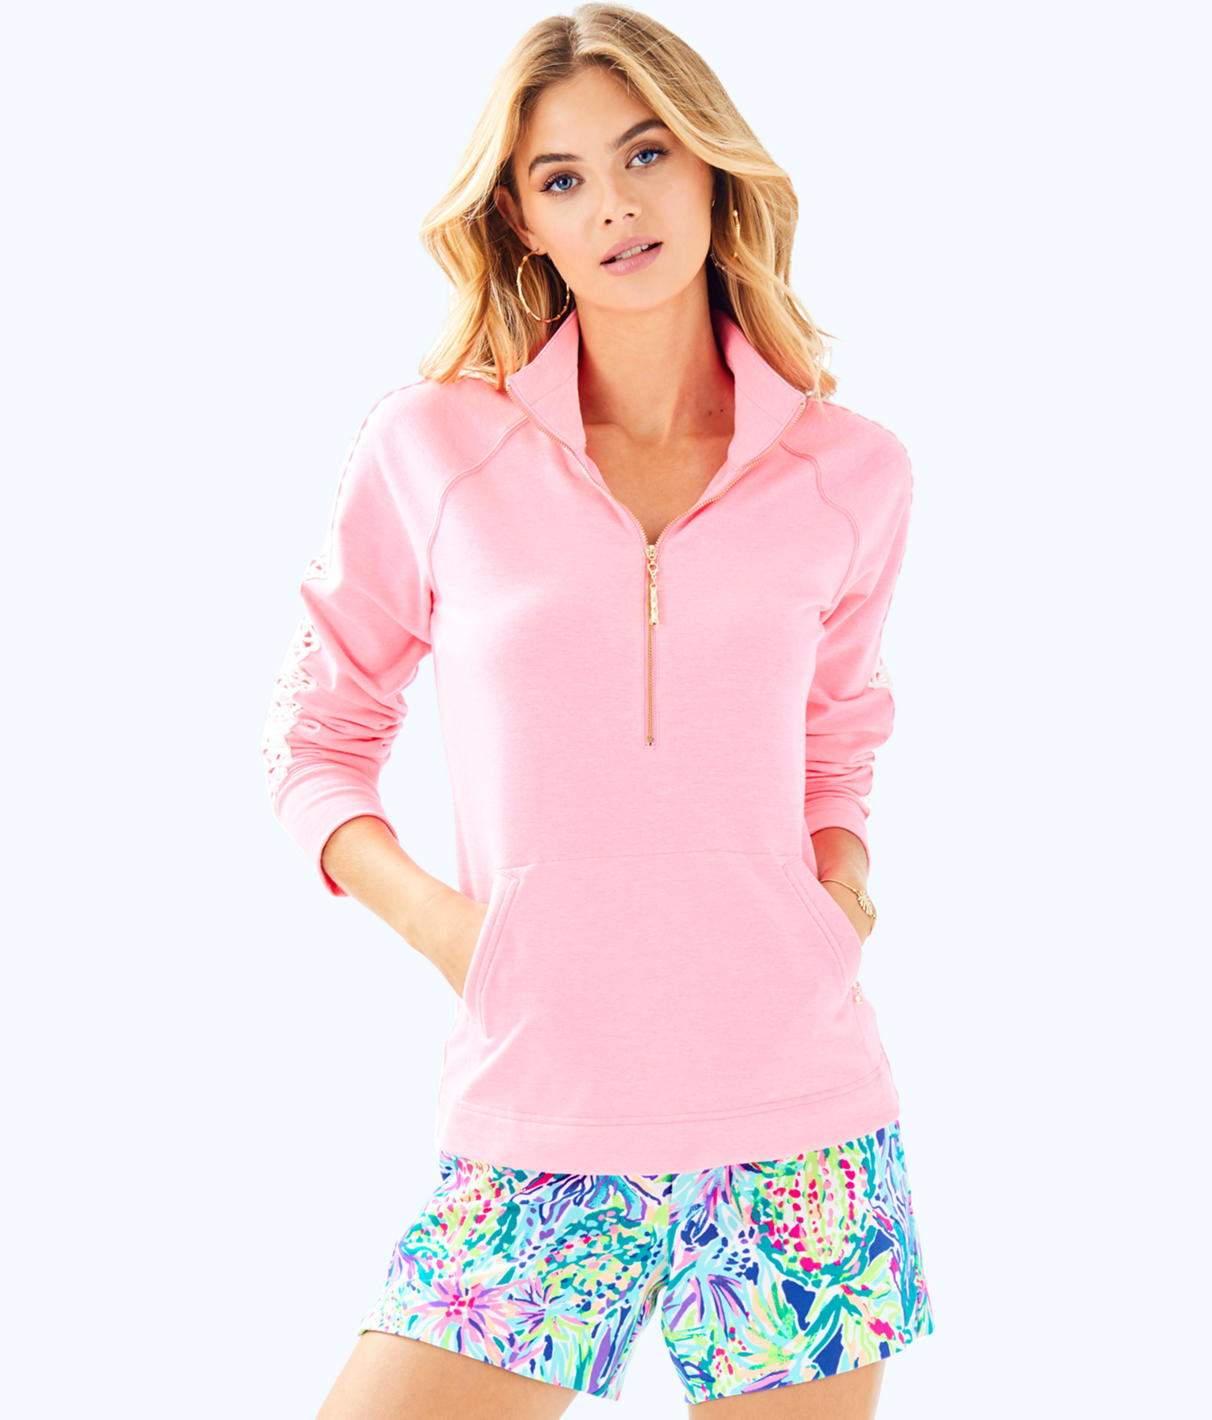 Lilly Pulitzer Lilly Pulitzer Womens Skipper Solid Popover